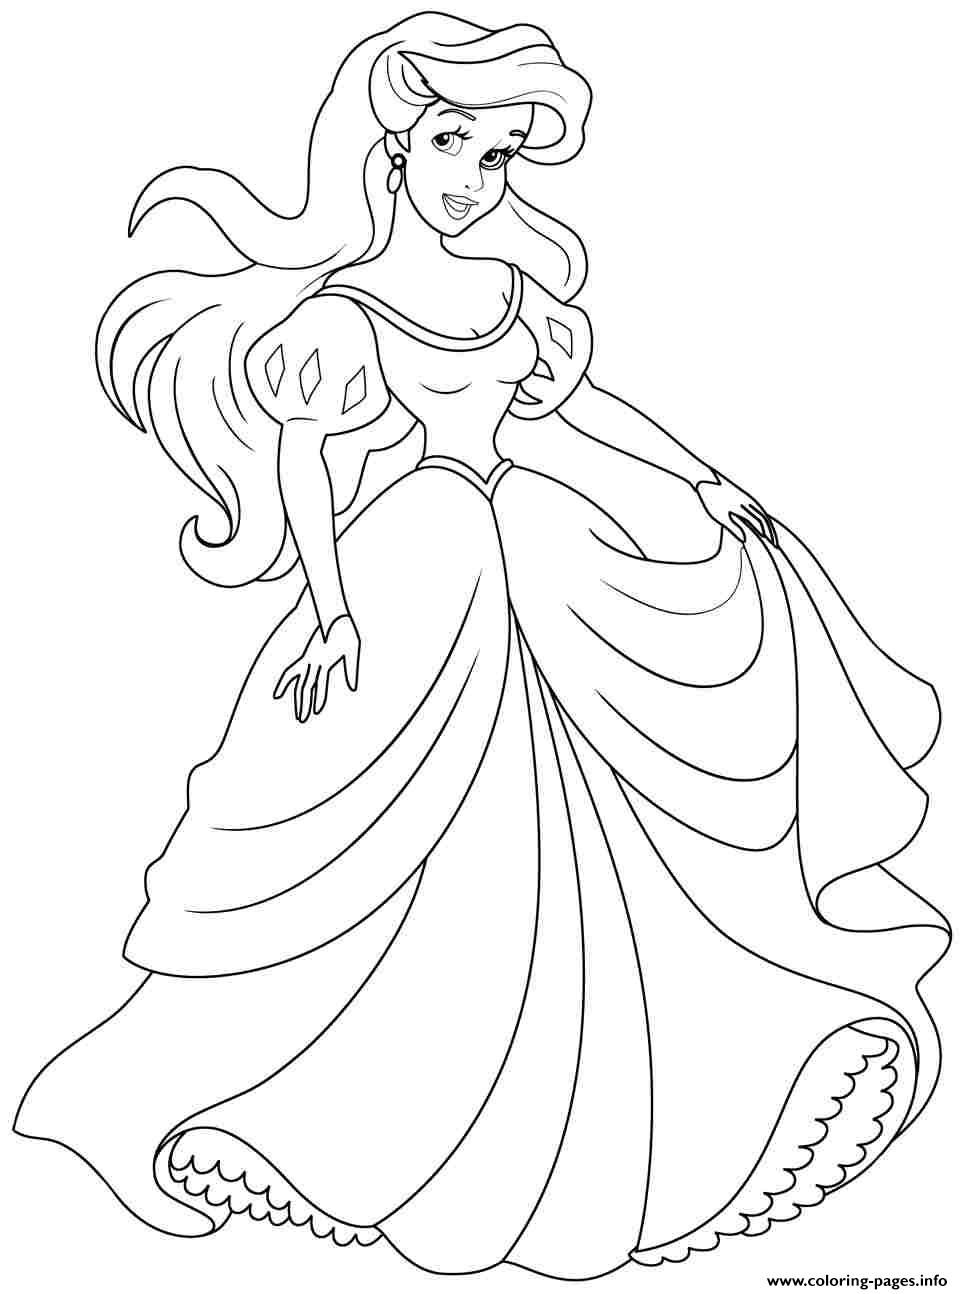 Print Princess Ariel Human Coloring Pages Princess Ariel Princess Coloring Pages Printable